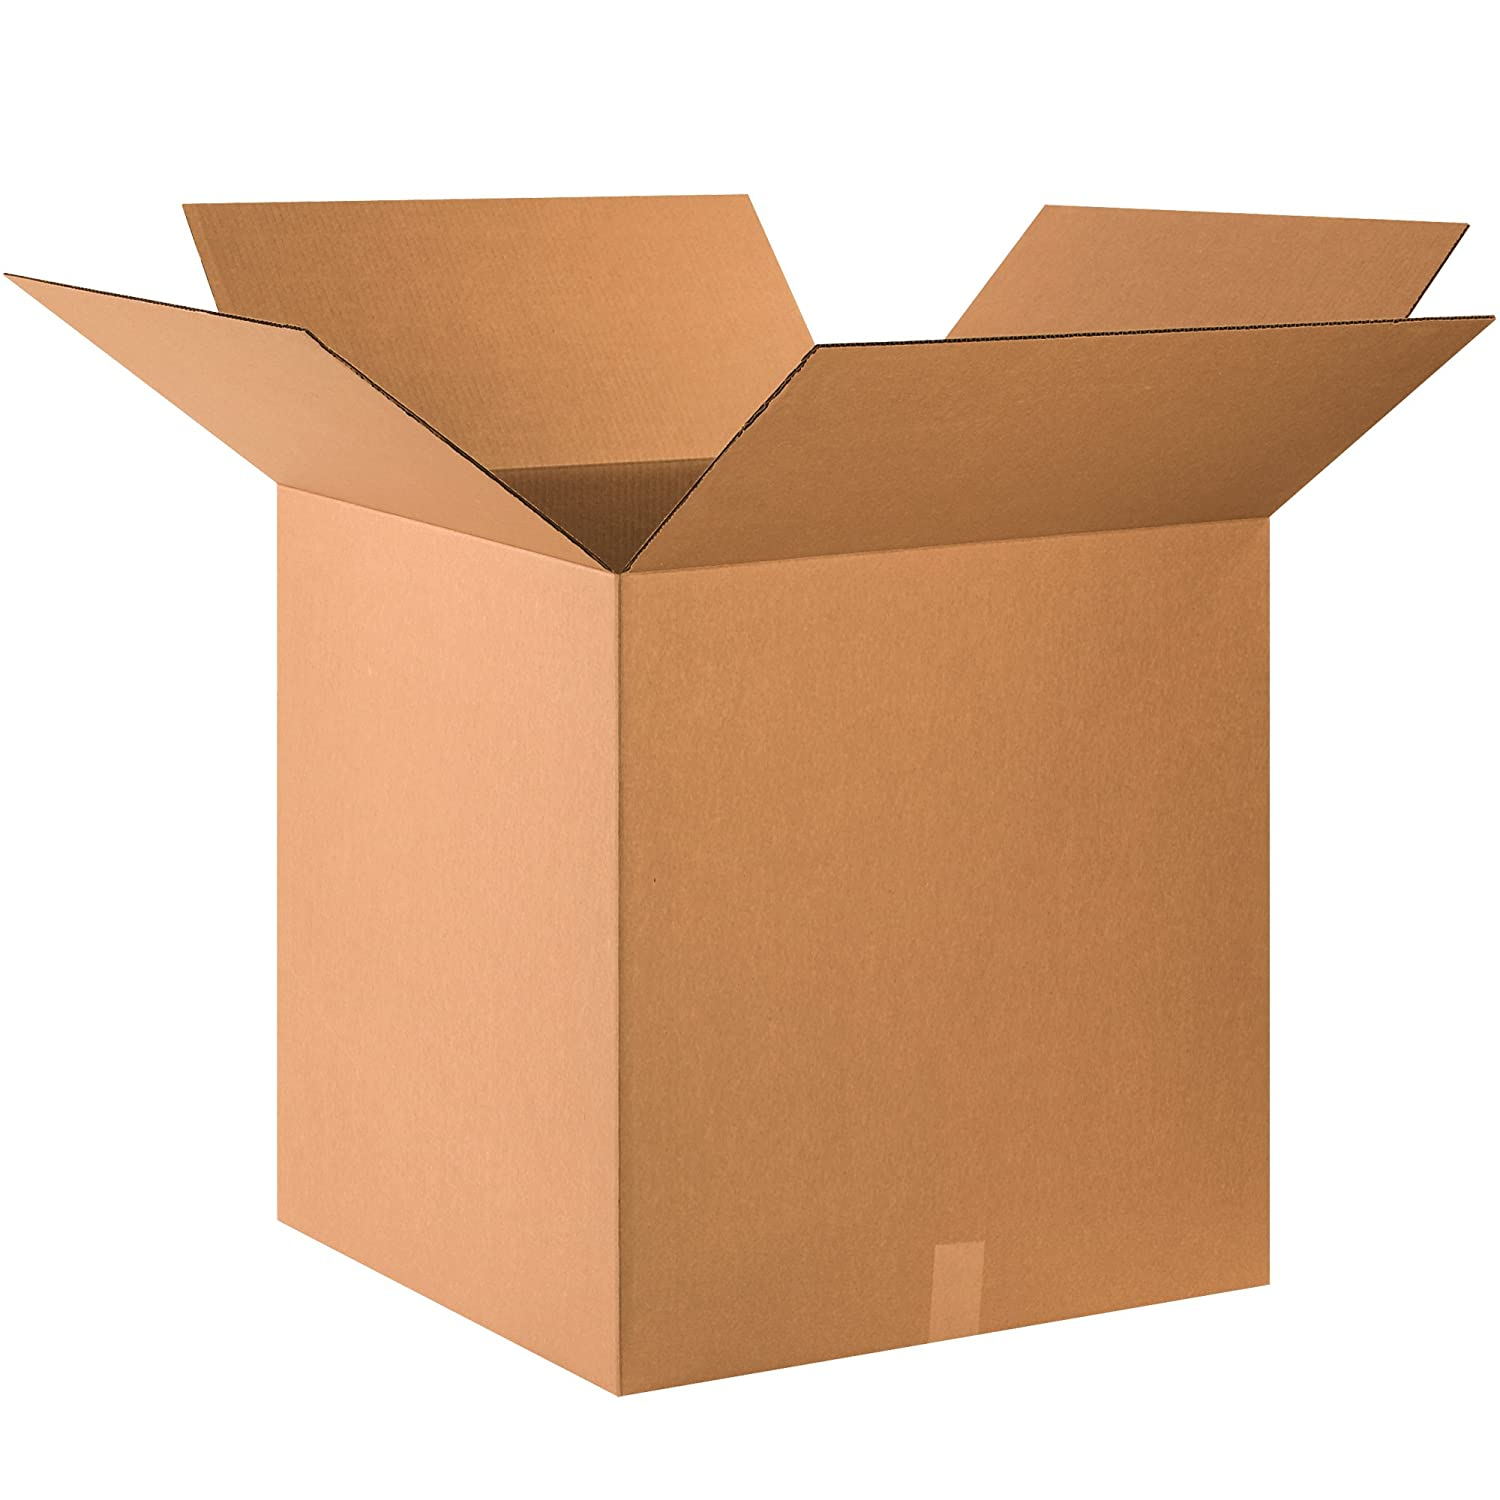 4 1//2L x 4 1//2W x 72H Kraft Ship Now Supply SNT4472OUTER Telescoping Outer Boxes Pack of 25